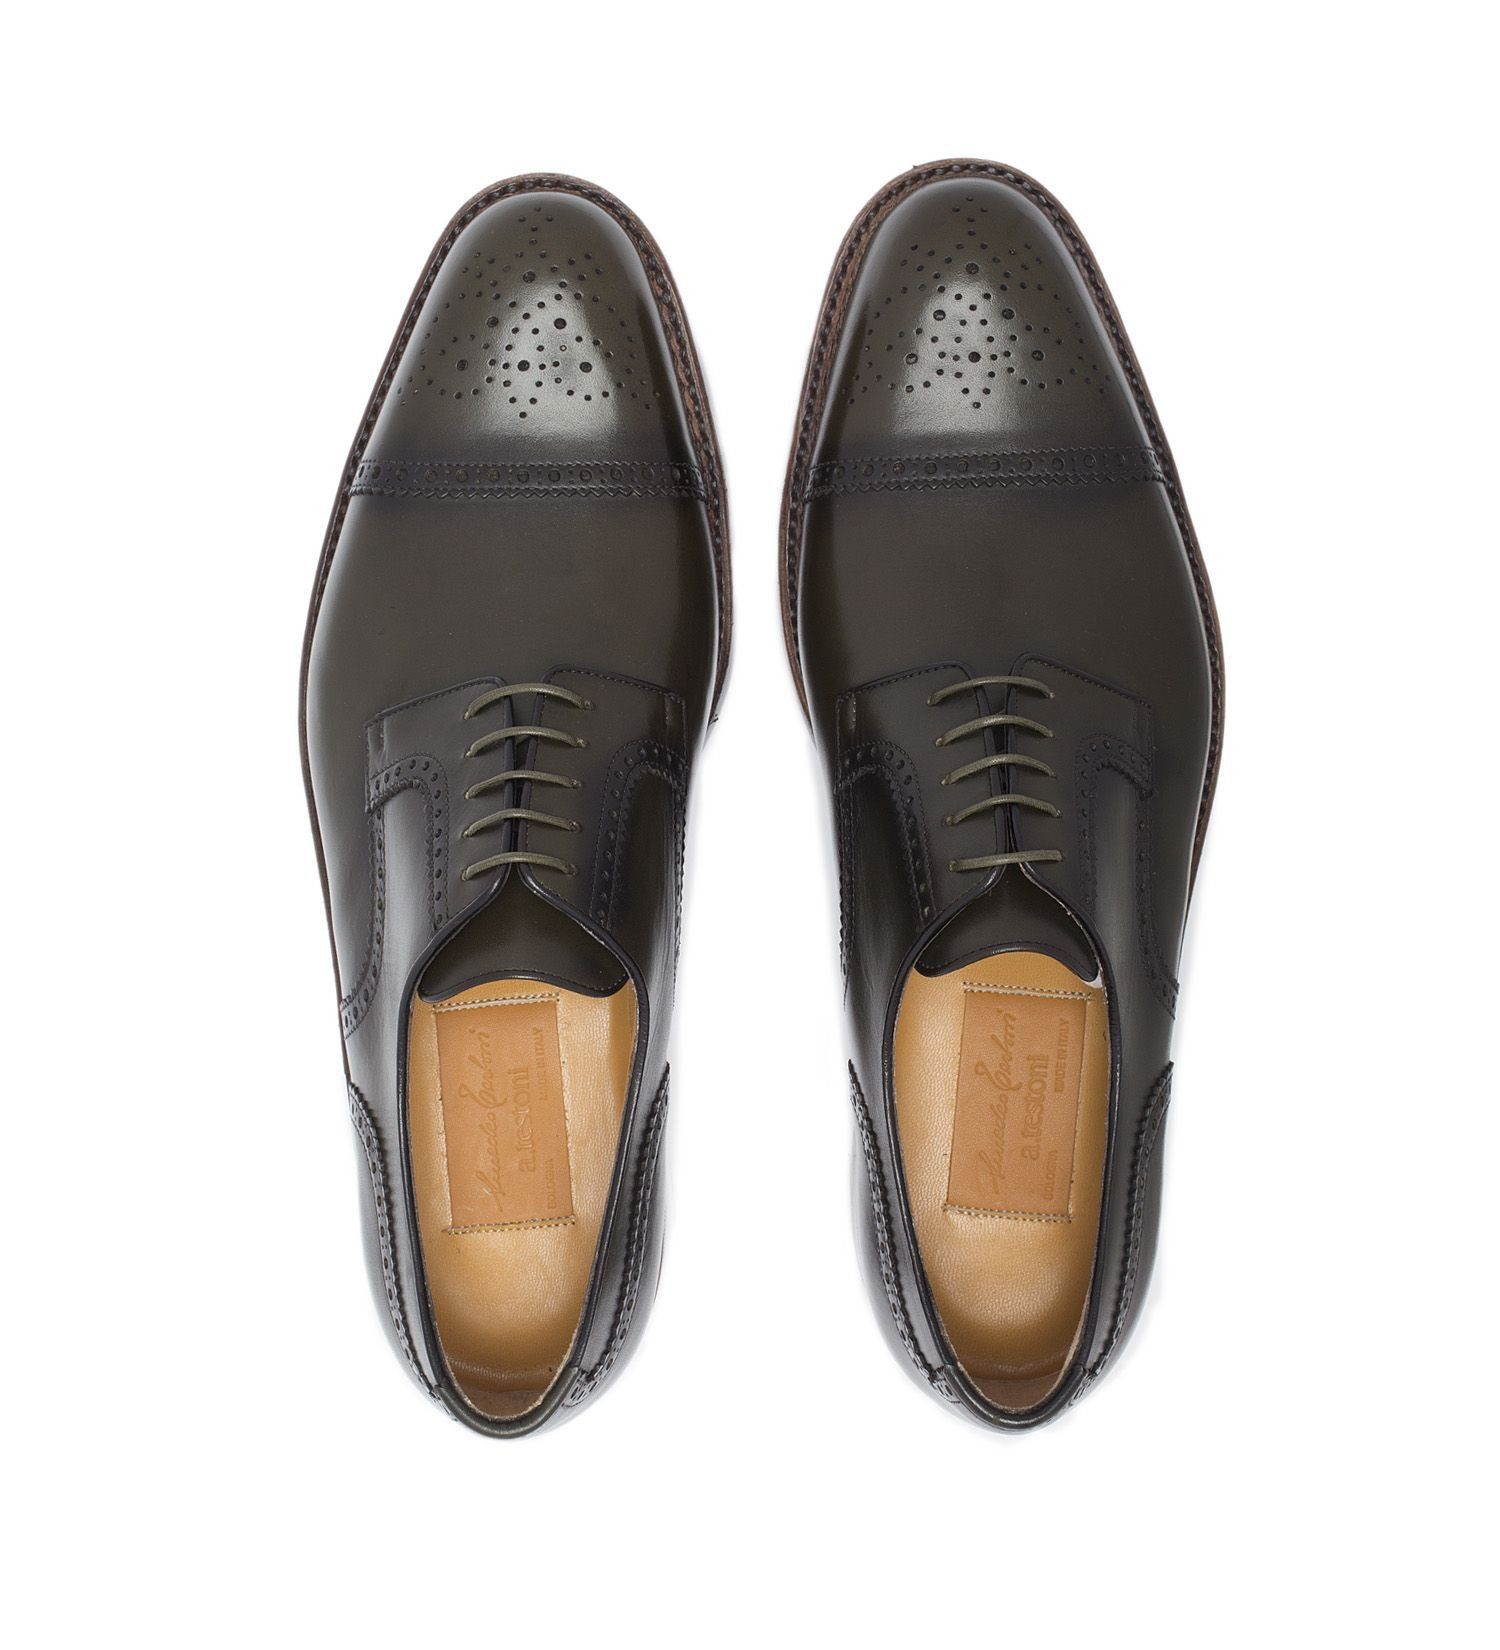 LACE-UP LEATHER CAP-TOE,SHOES,A.TESTONI, | GentRow.com